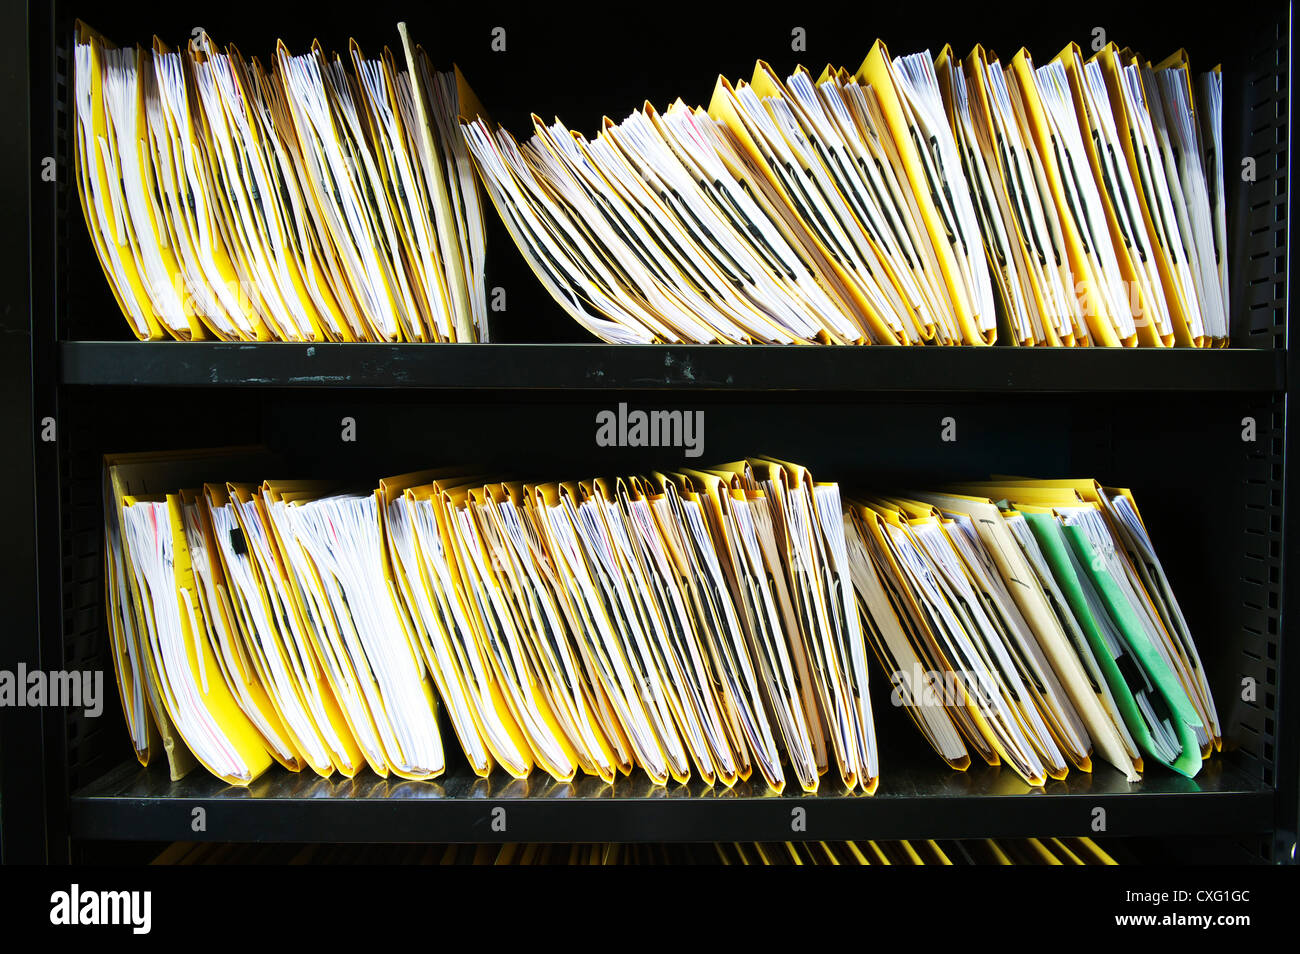 confidential medical and business files sitting on office shelves - Stock Image